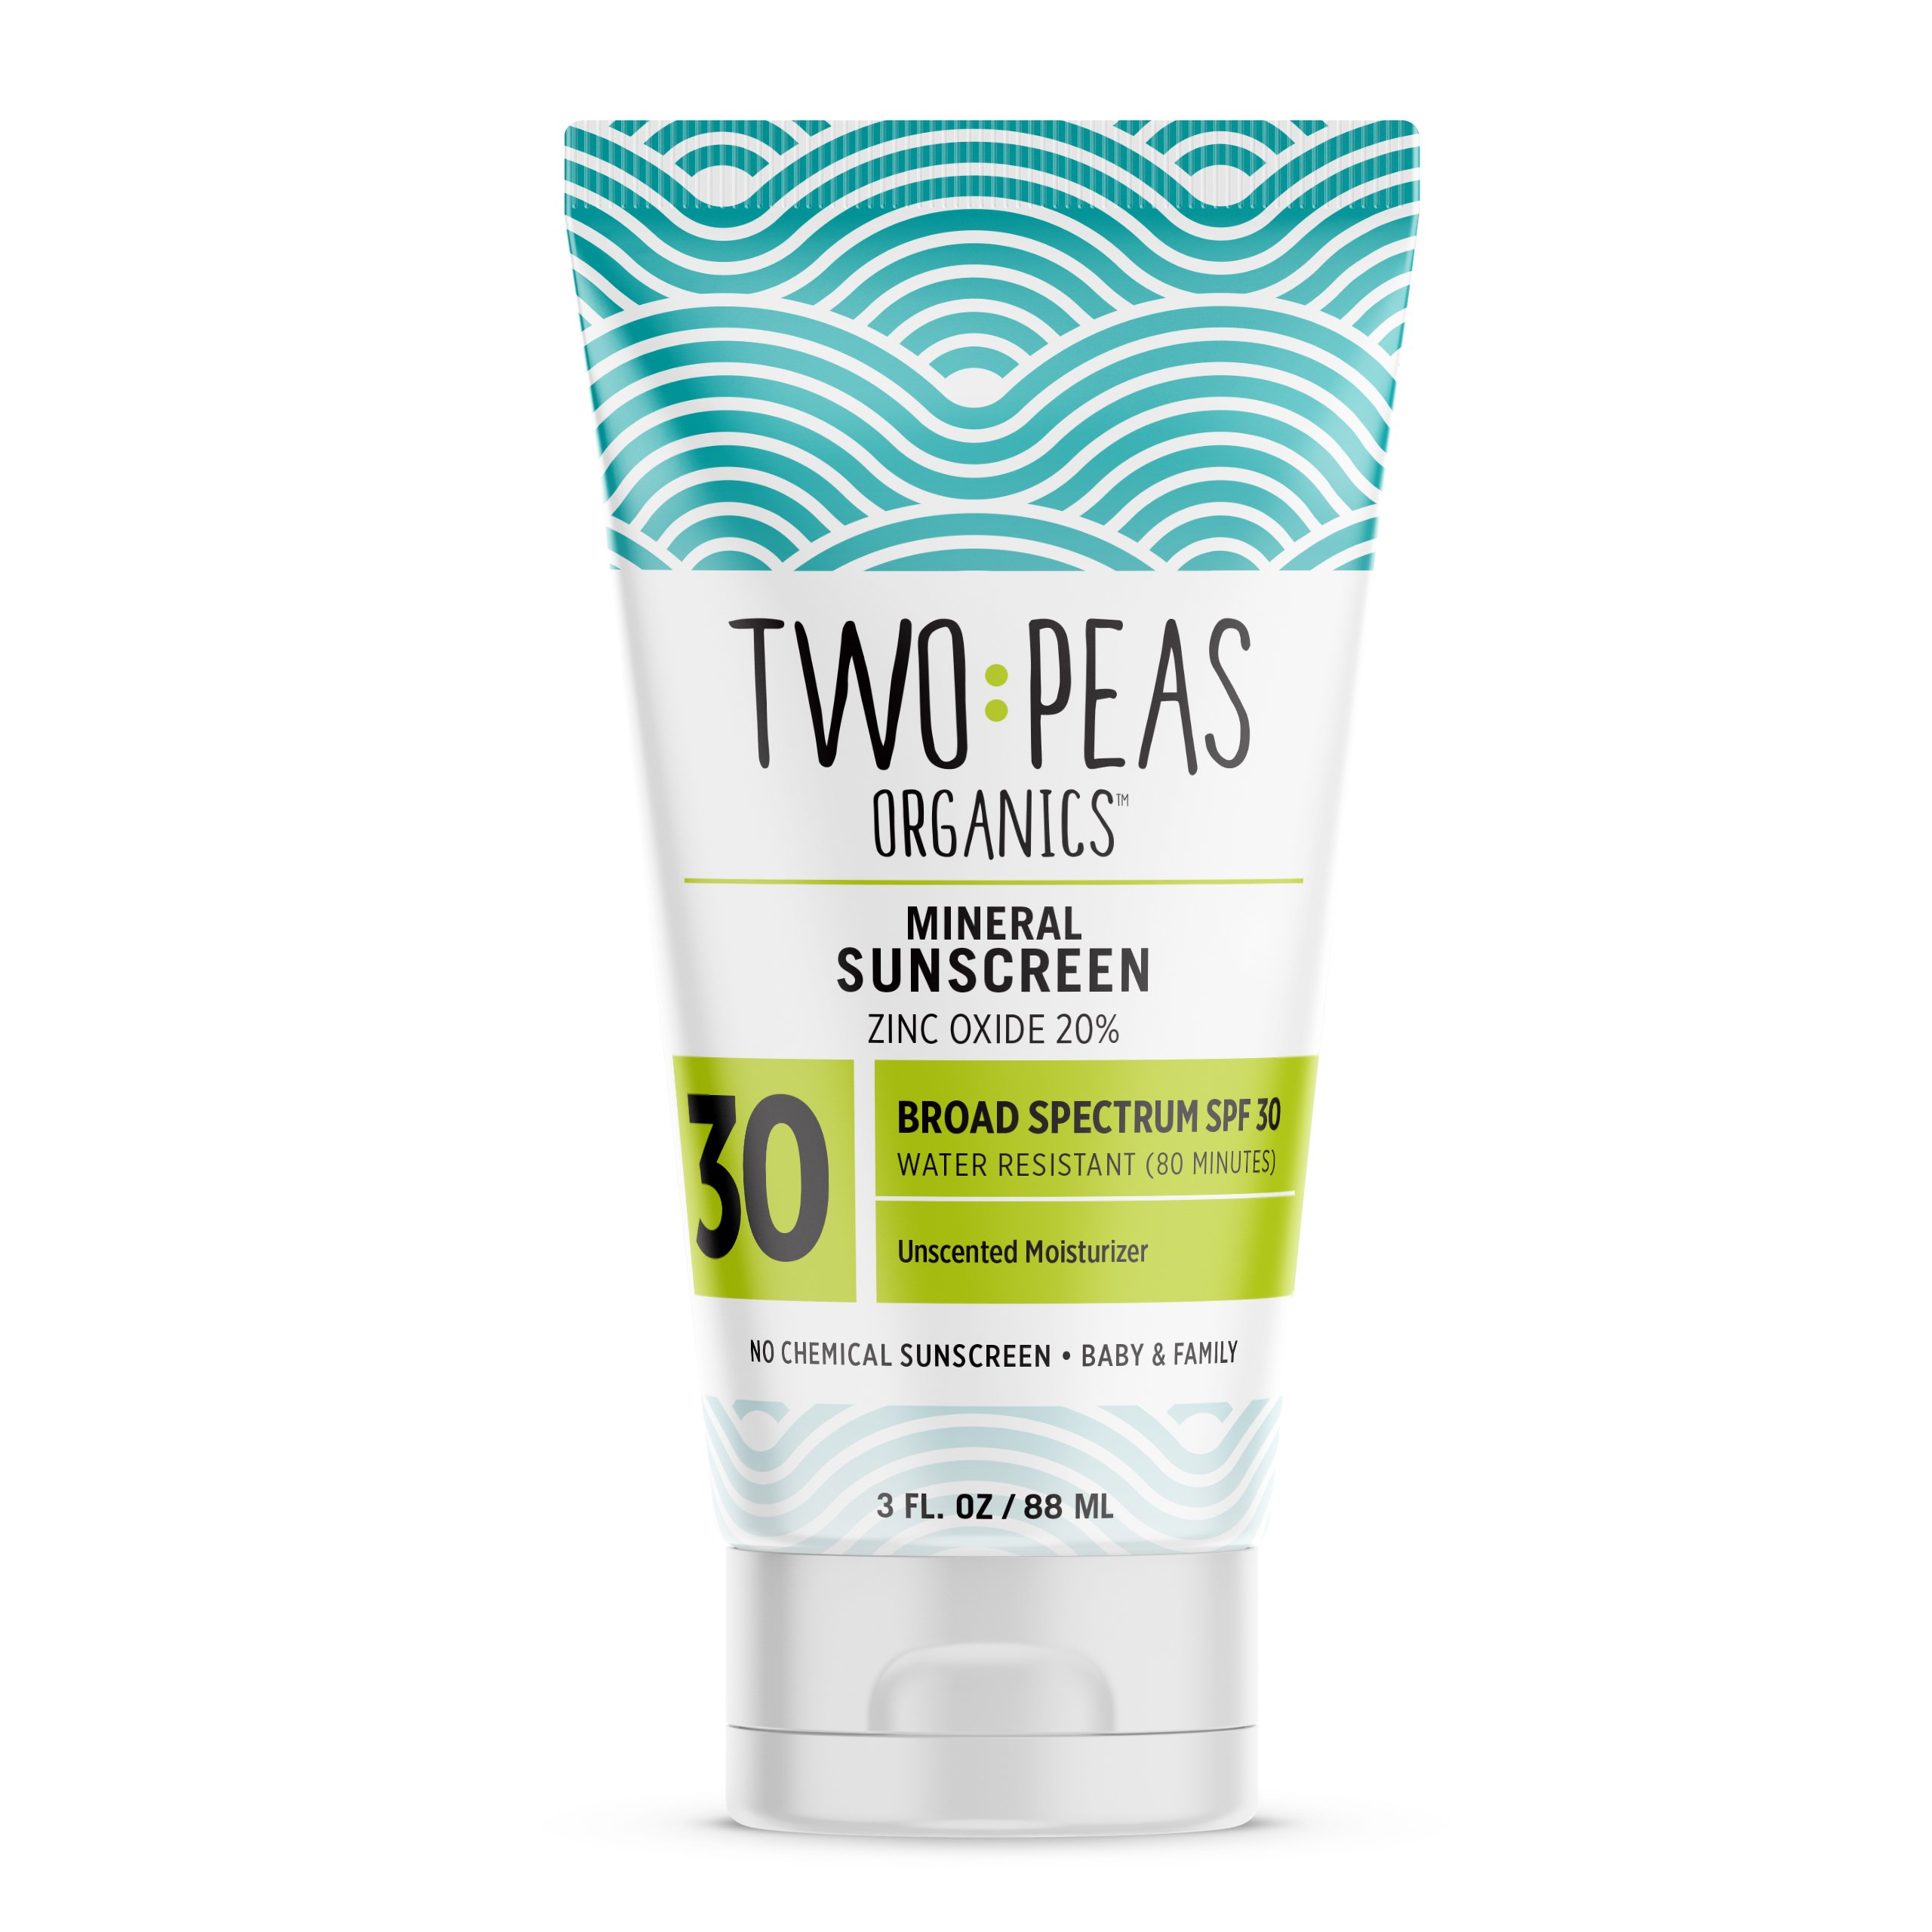 Two Peas Organics SPF 30 Mineral Sunscreen for Women, Men, Kids & Baby Friendly, Coral Reef Safe Natural Sun Screen Lotion, Waterproof & Unscented, 3oz by Two Peas Organics